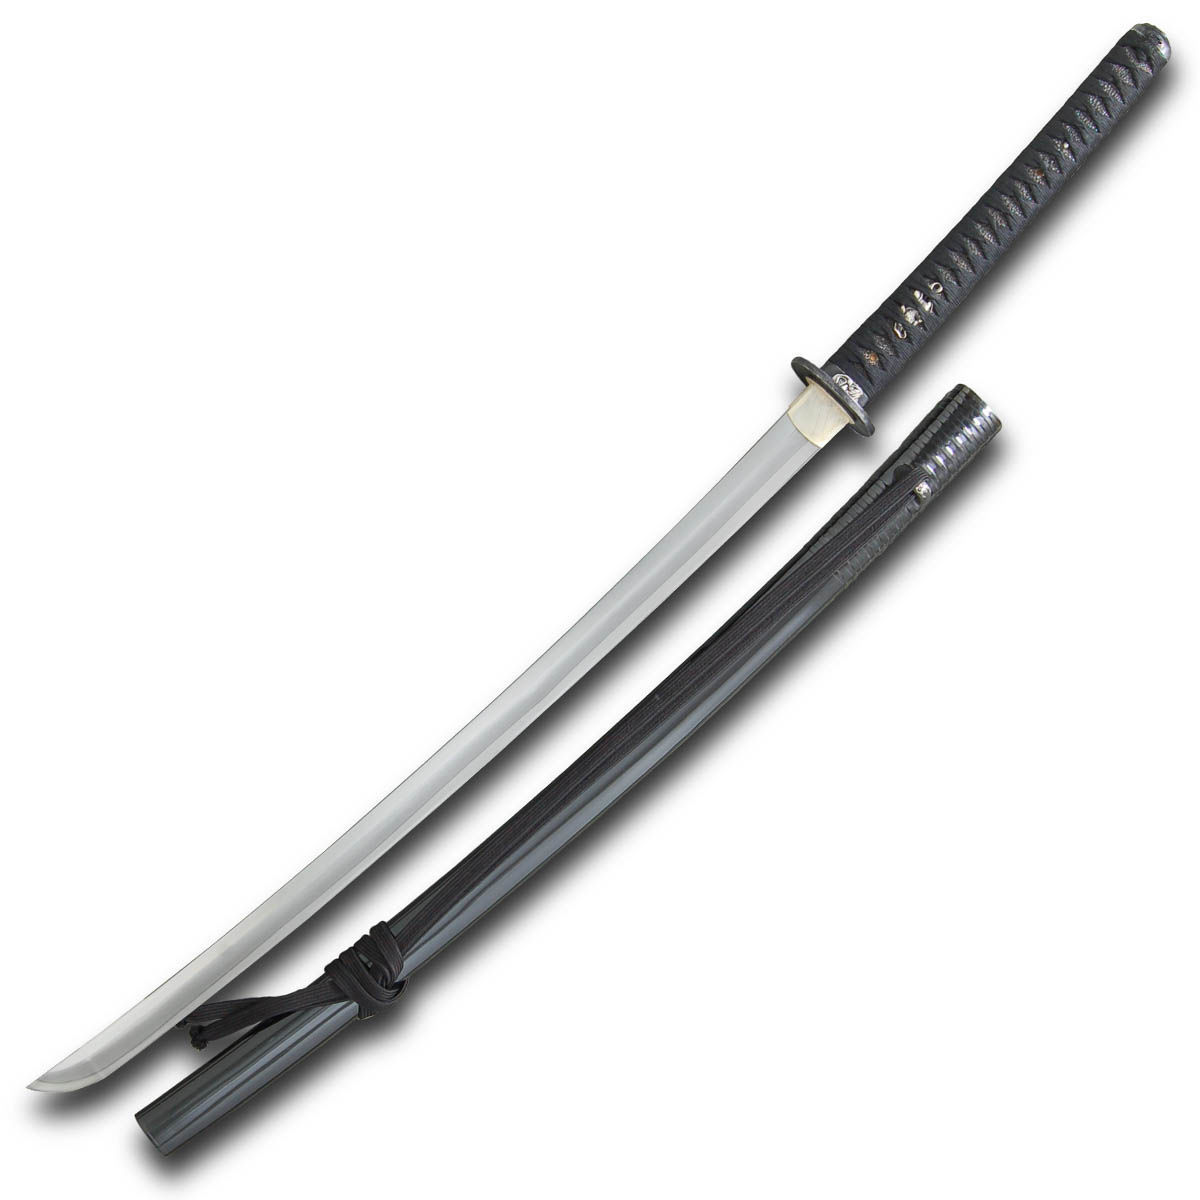 Oni Katana by Paul Chen / Hanwei with black ray skin tsuka, flexible L-6 tool steel blade and lacquered saya